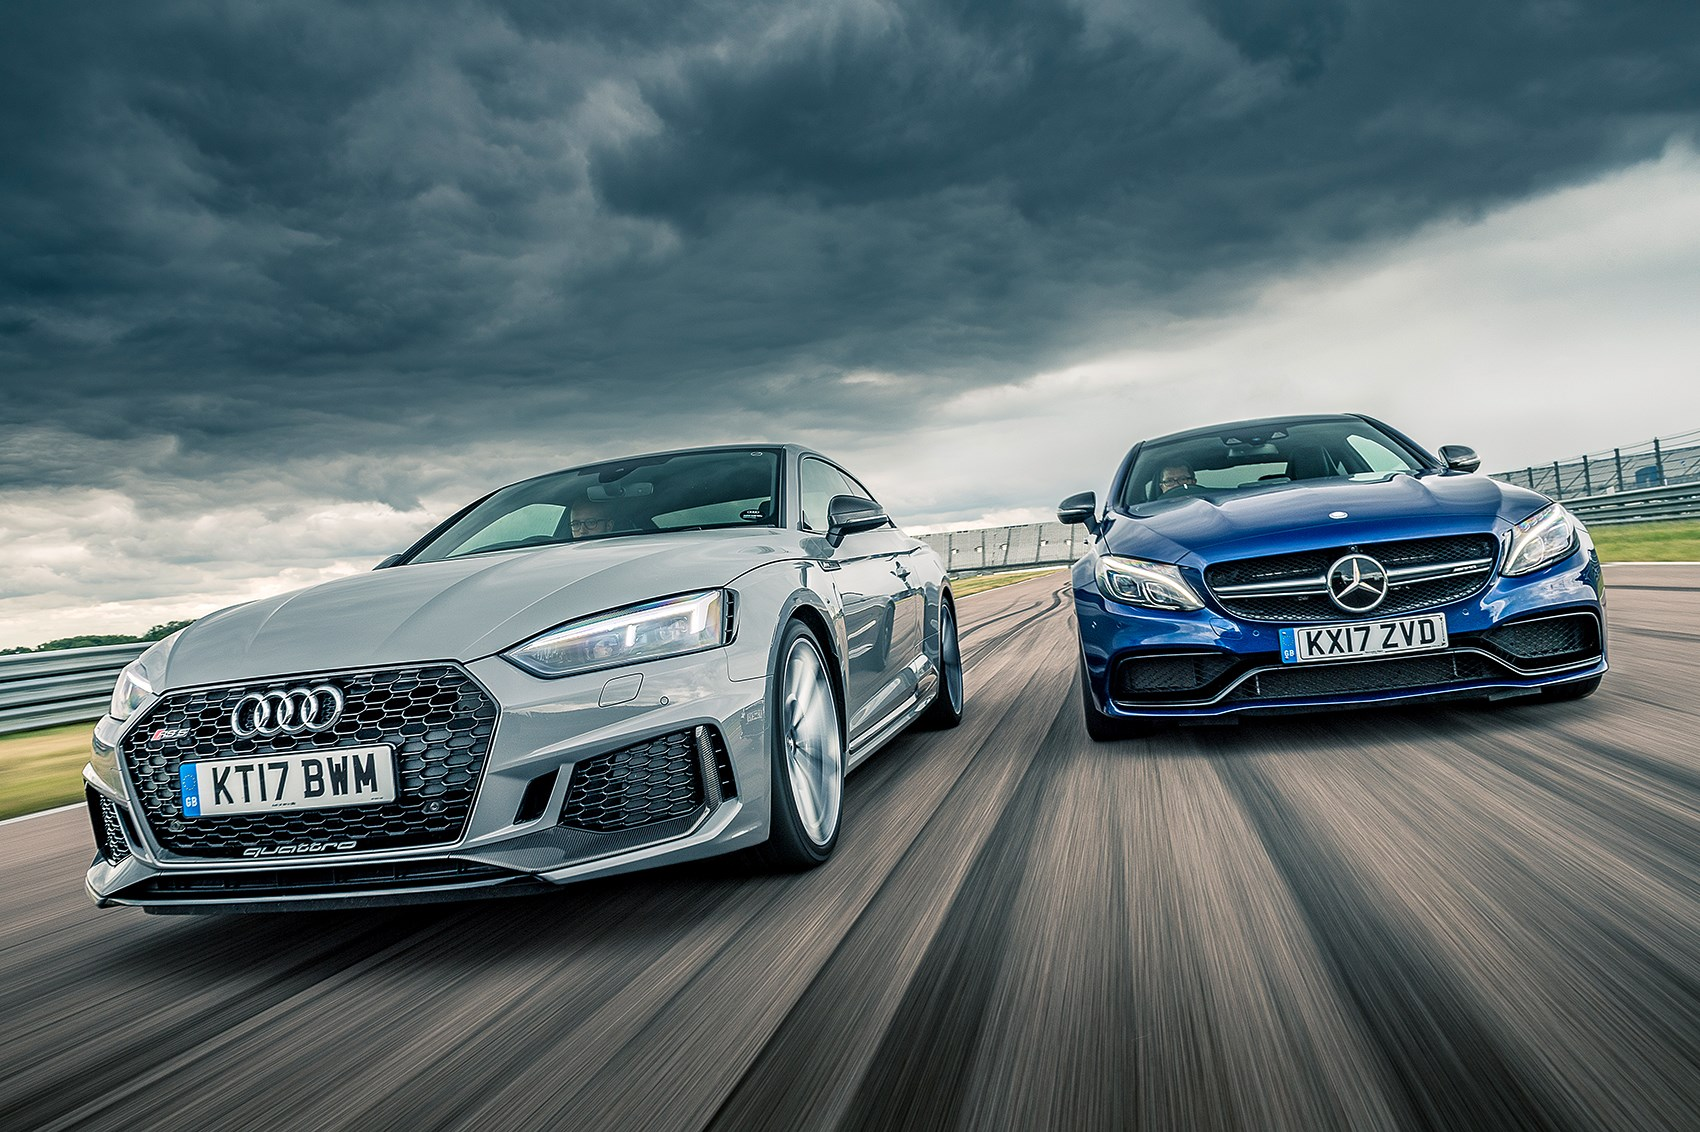 audi rs5 vs mercedes amg c63 s twin test review by car magazine. Black Bedroom Furniture Sets. Home Design Ideas